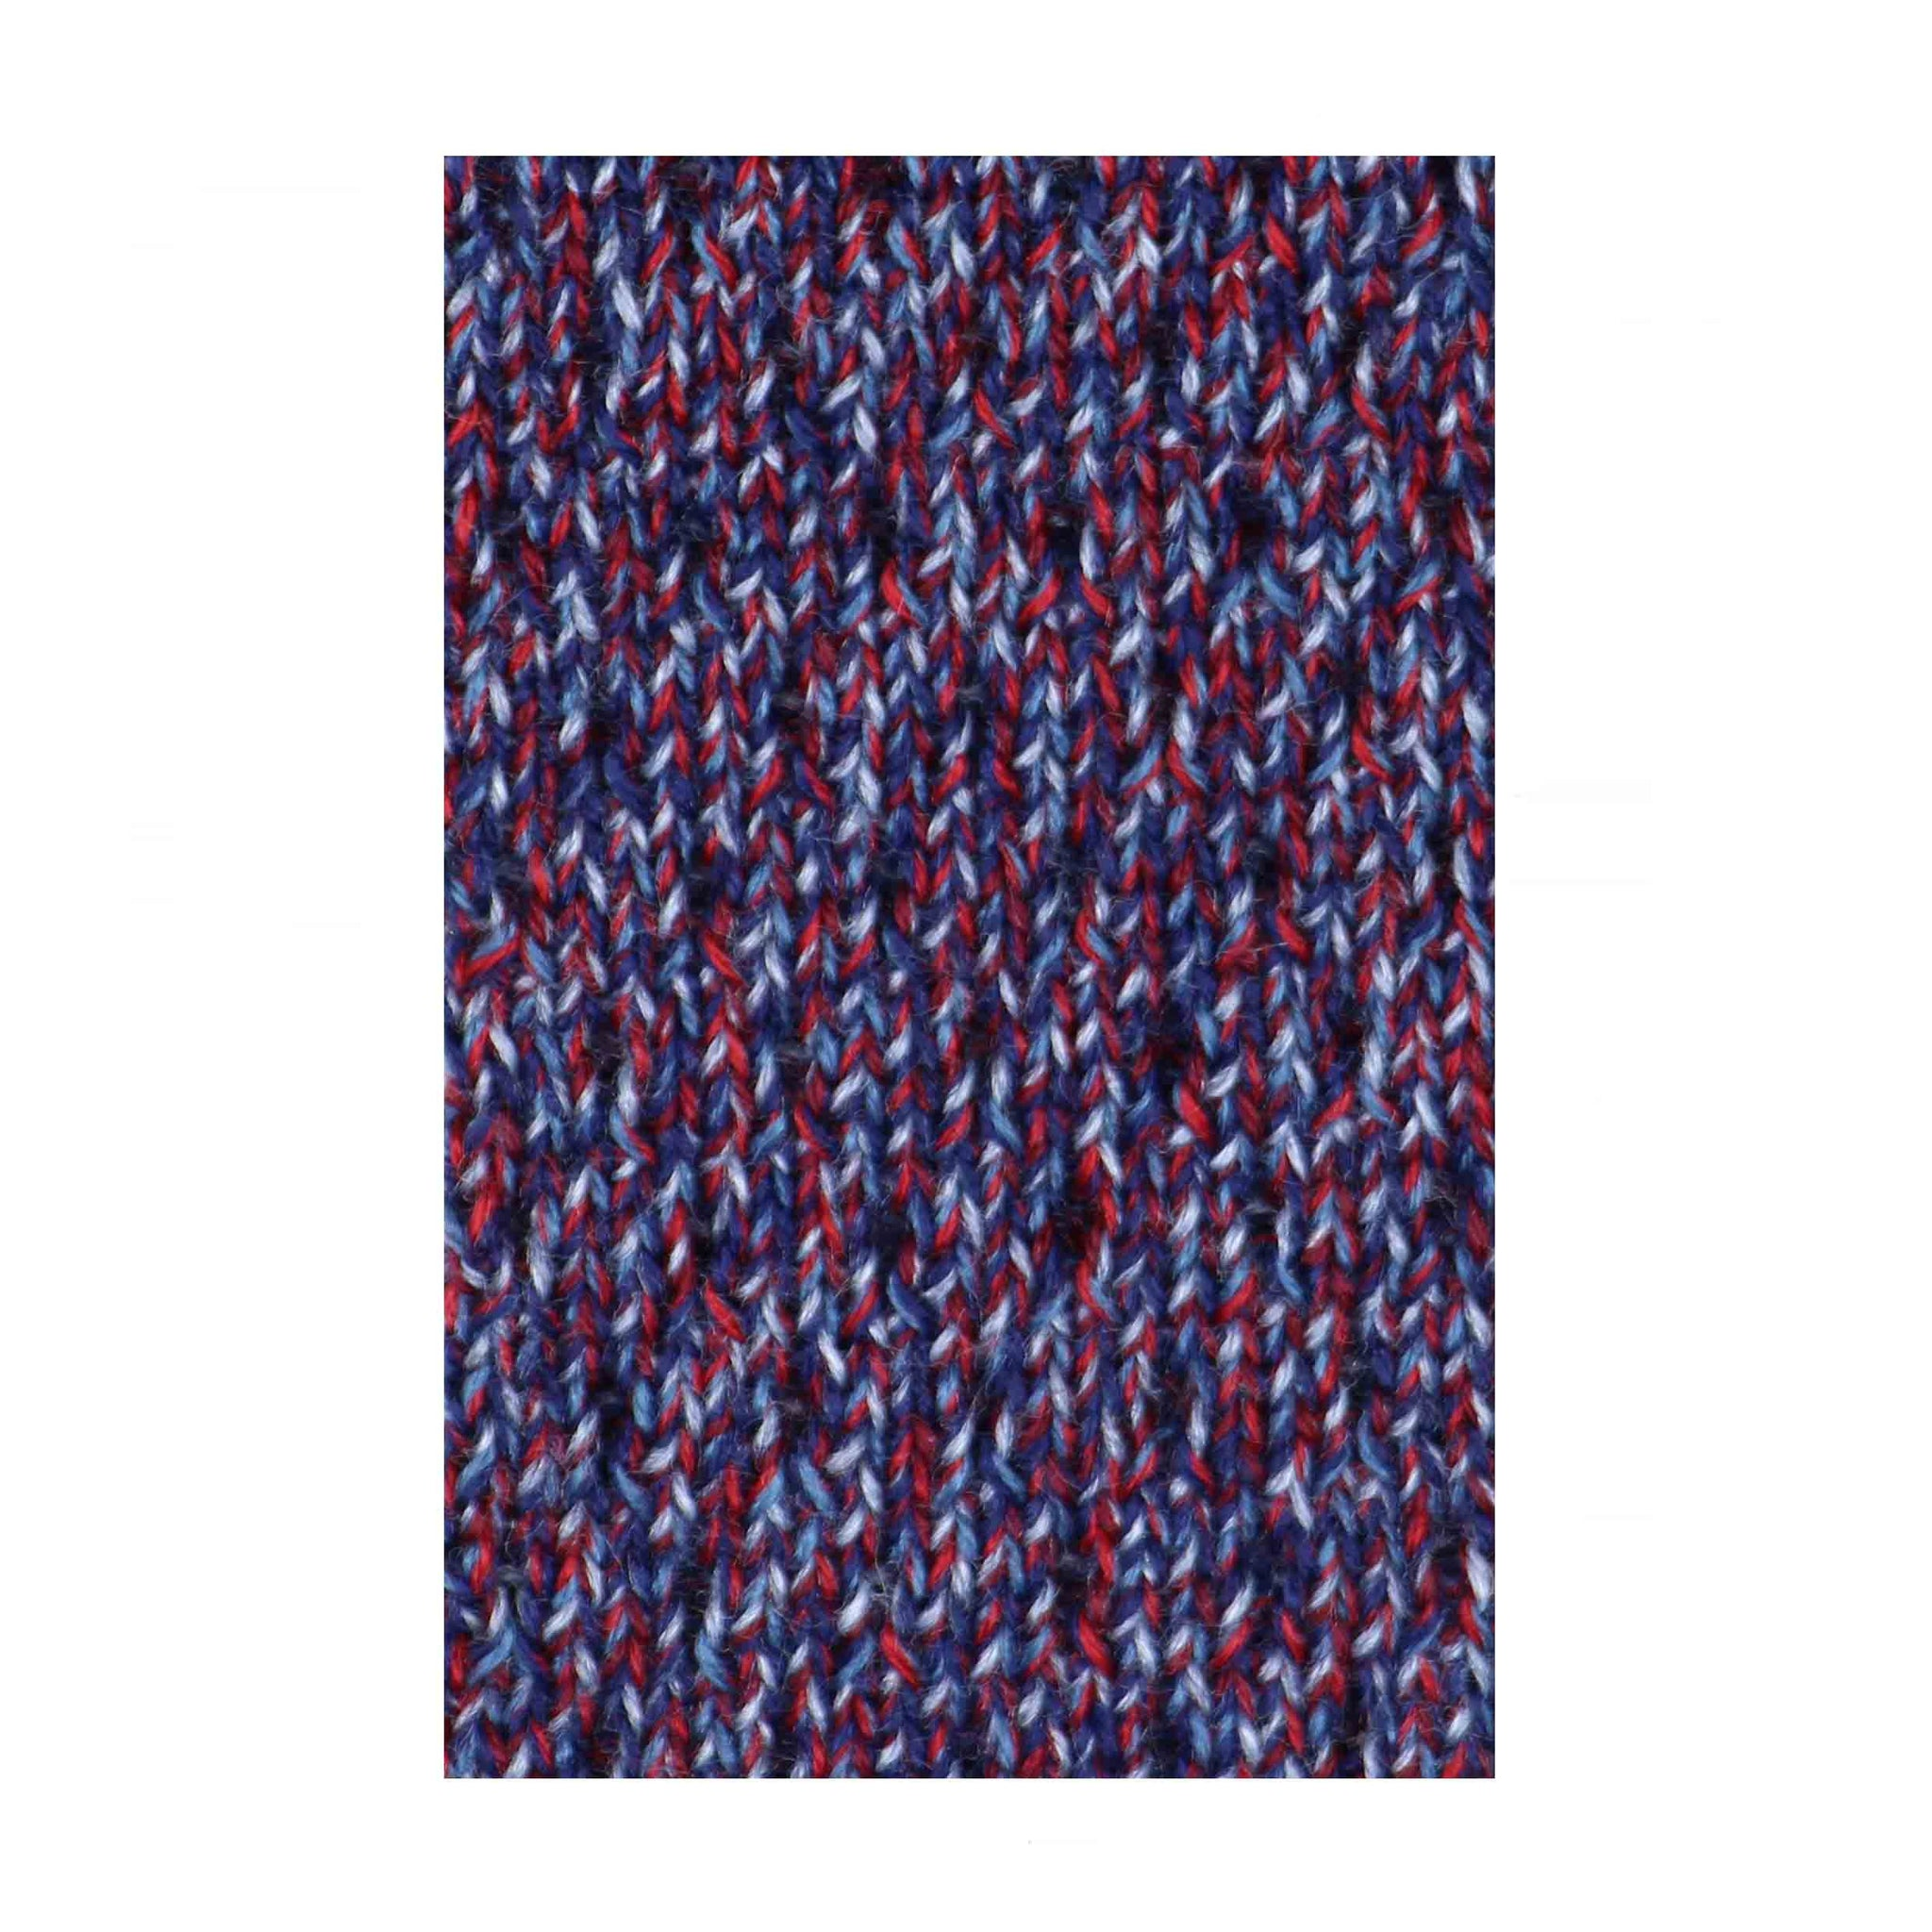 Cravate Galloway tricot de laine rouge bleu gris